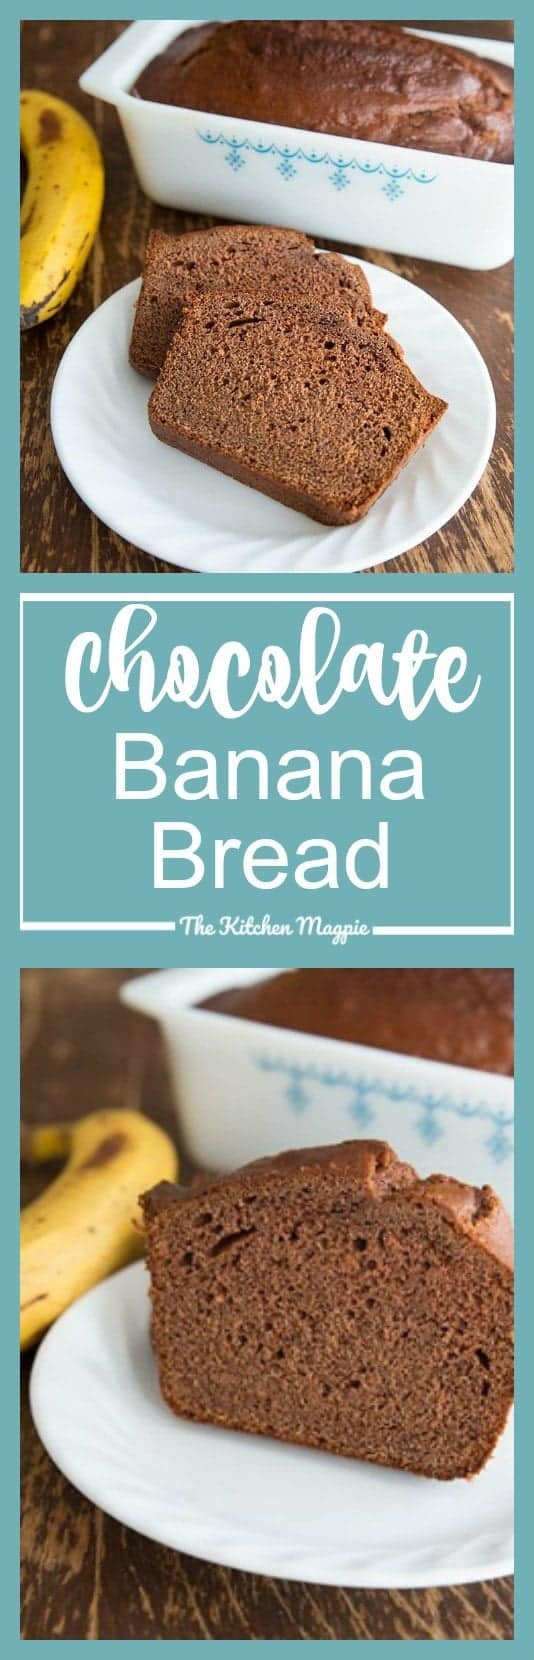 Chocolate Banana Bread - The Kitchen Magpie